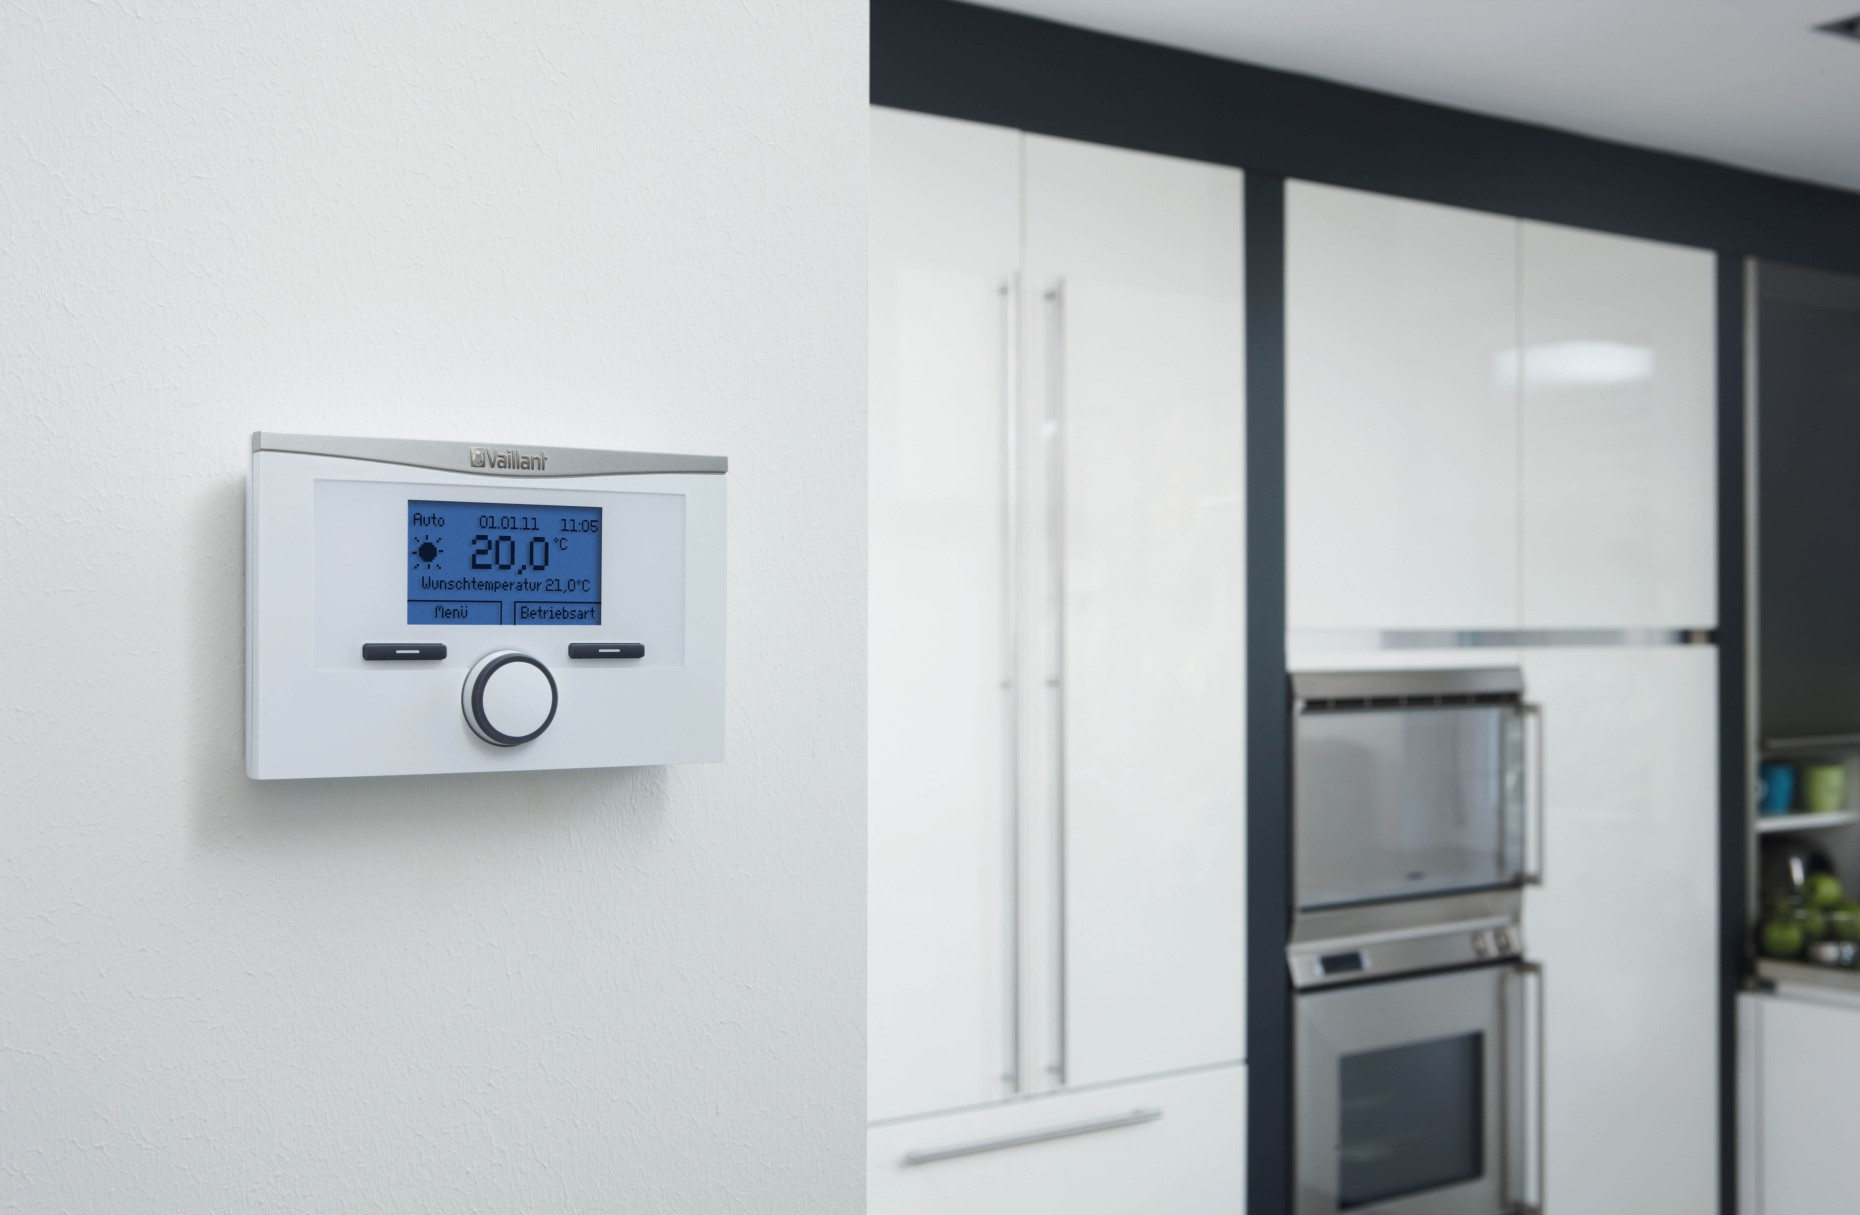 Thermostaat vaillant for Caldaie vaillant modelli vecchi